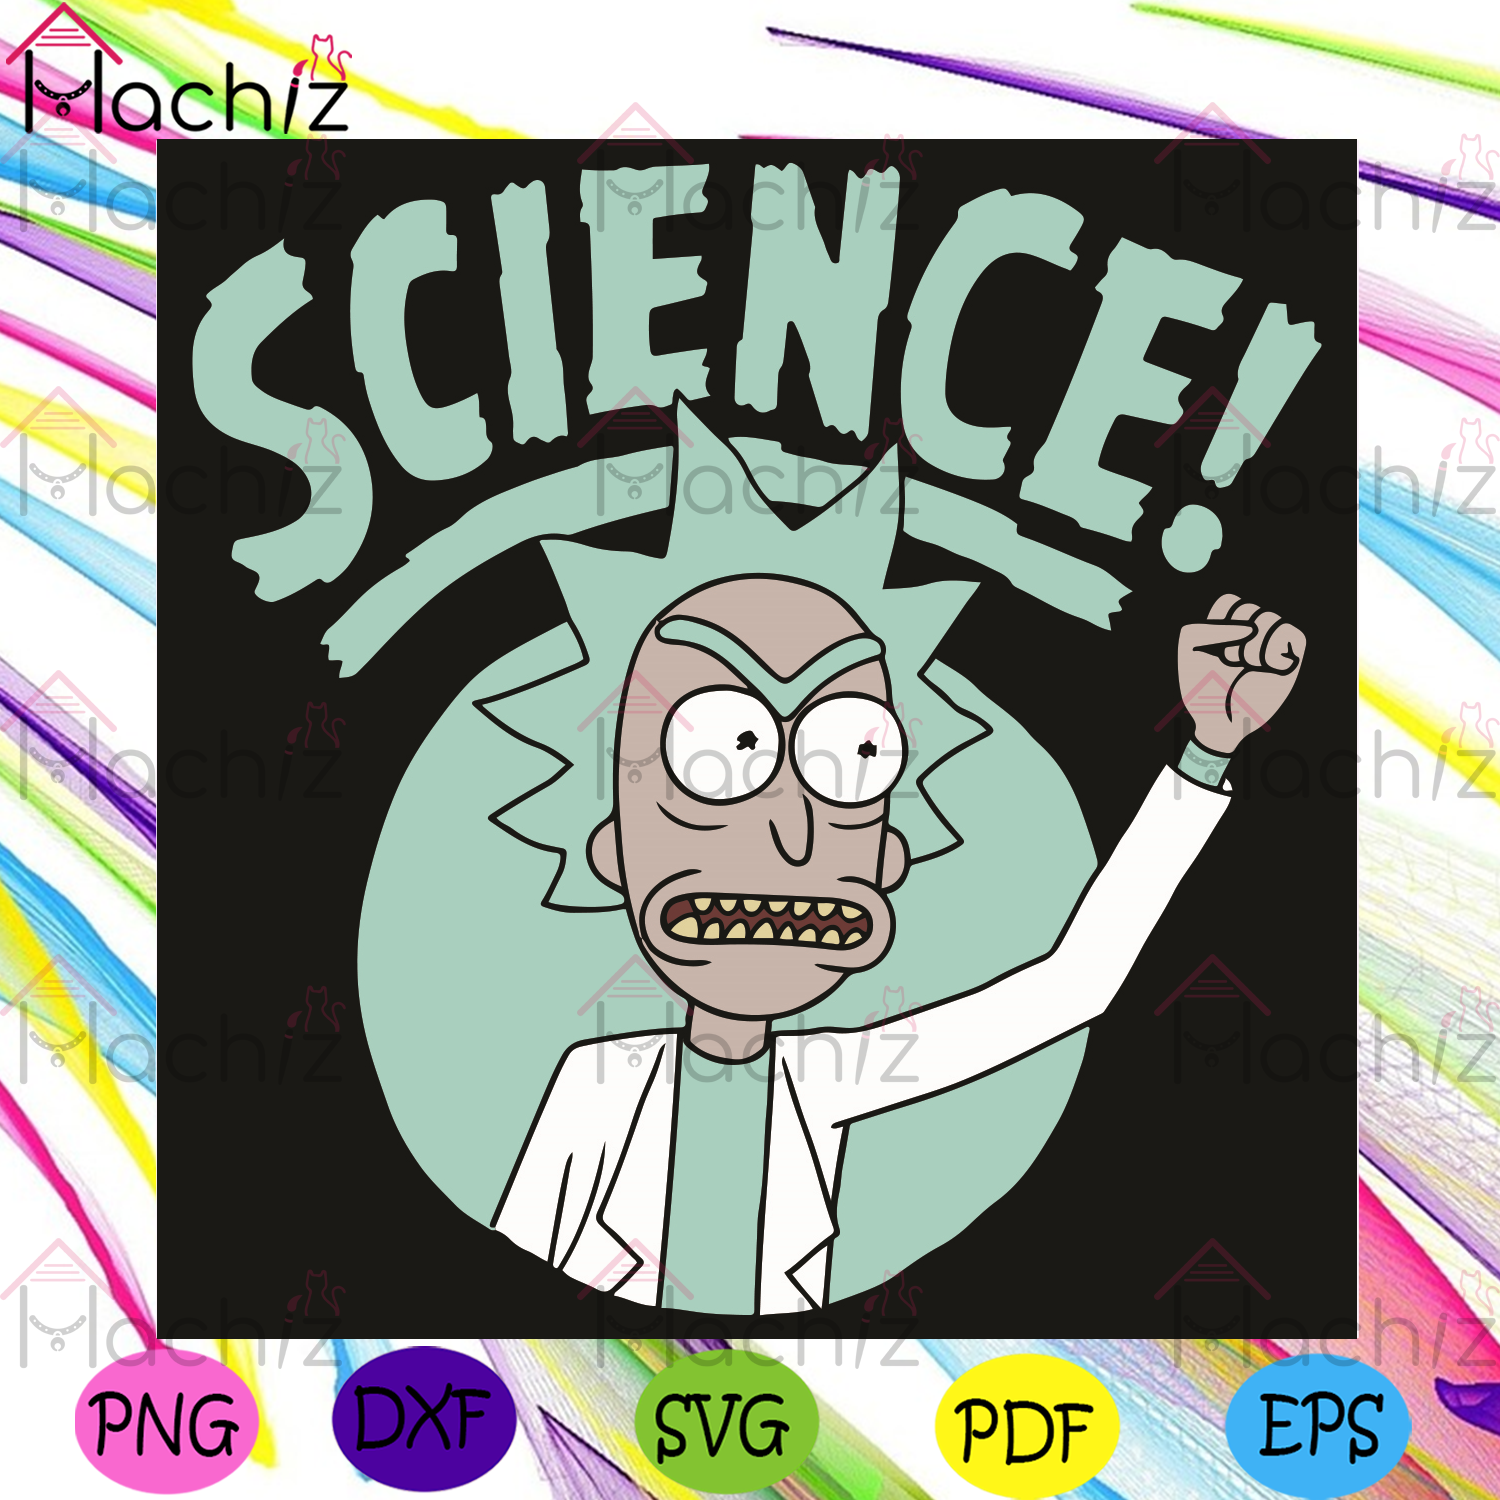 Science Svg, Trending Svg, Rick Sanchez Svg, Rick And Morty Science Svg, Morty Svg, Science Fiction Svg, Wise Svg, Funny Svg, Funny Design Svg, Rick Lovers Svg, Rick And Morty Lovers Svg, Rick And Morty Science Gifts Svg